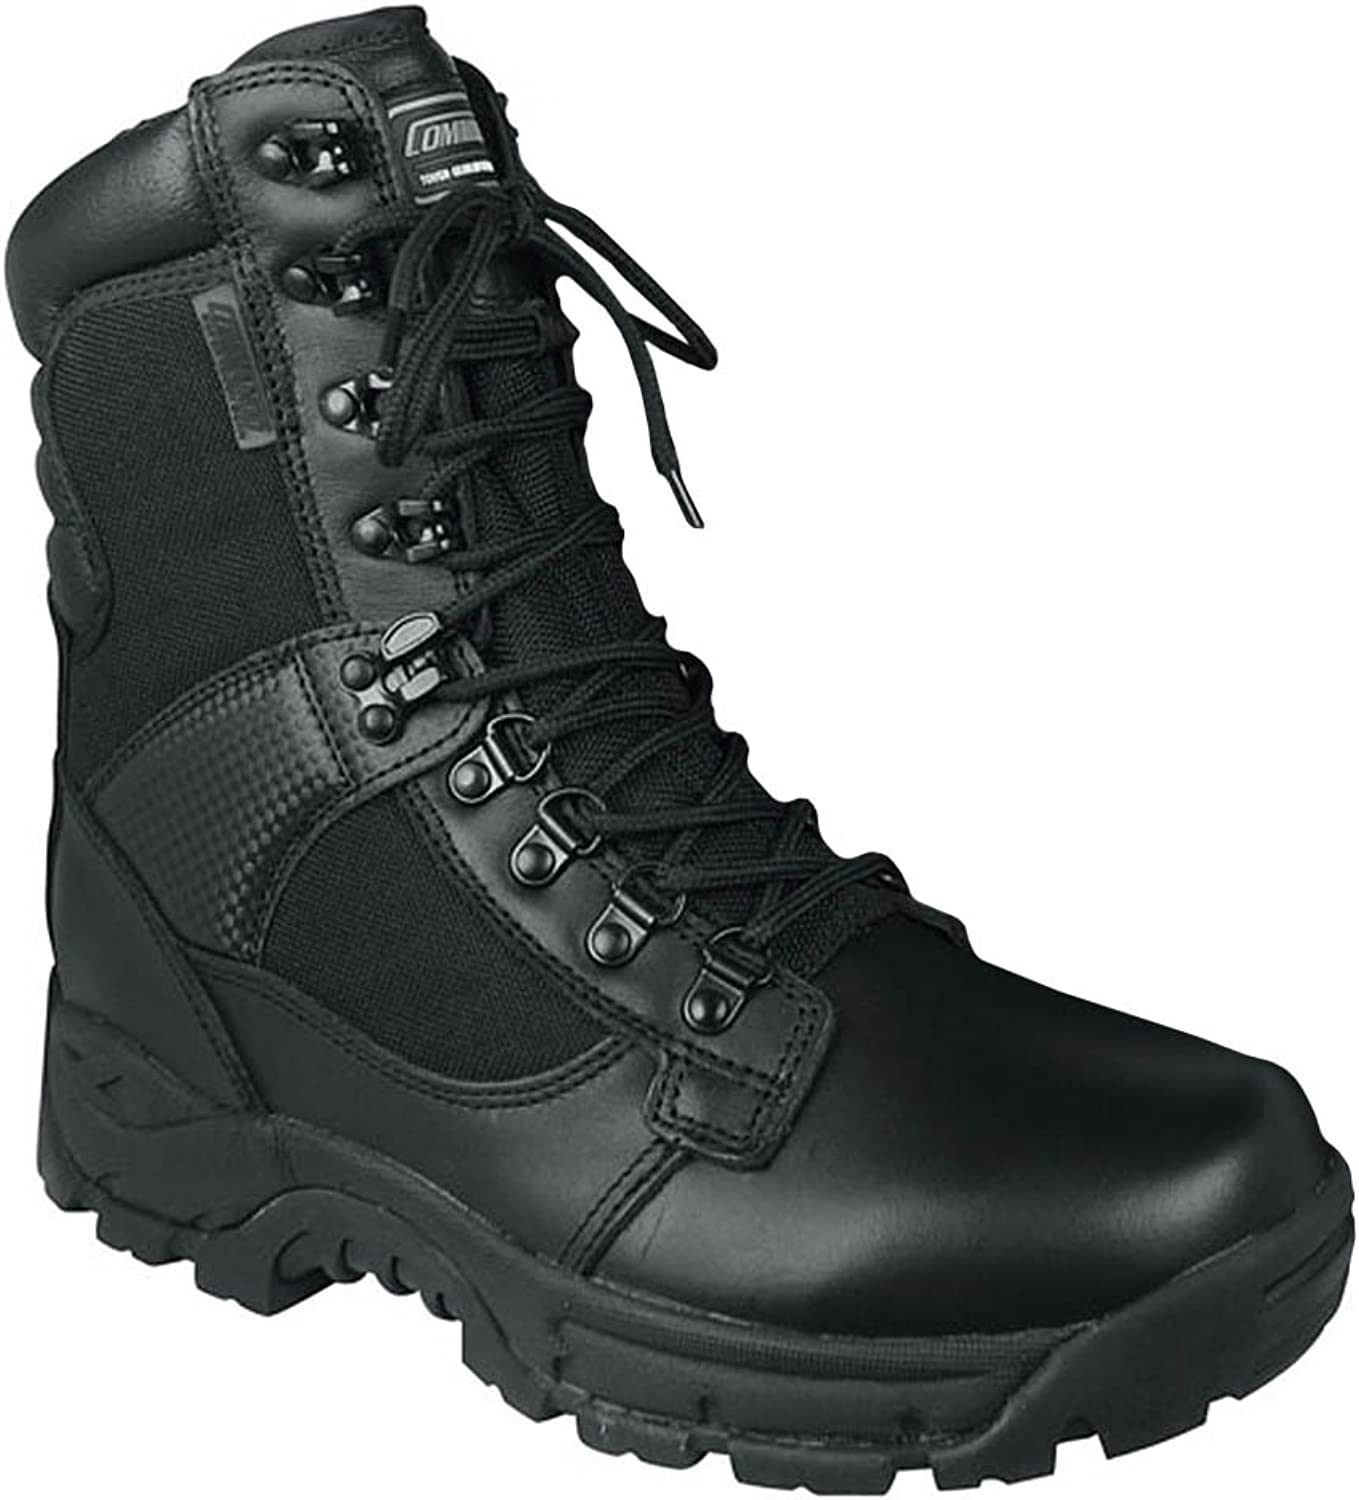 Elite Kampfstiefel Forces-Securityboots-Polizeistiefel Leather with Thinsulate Lined Size 43